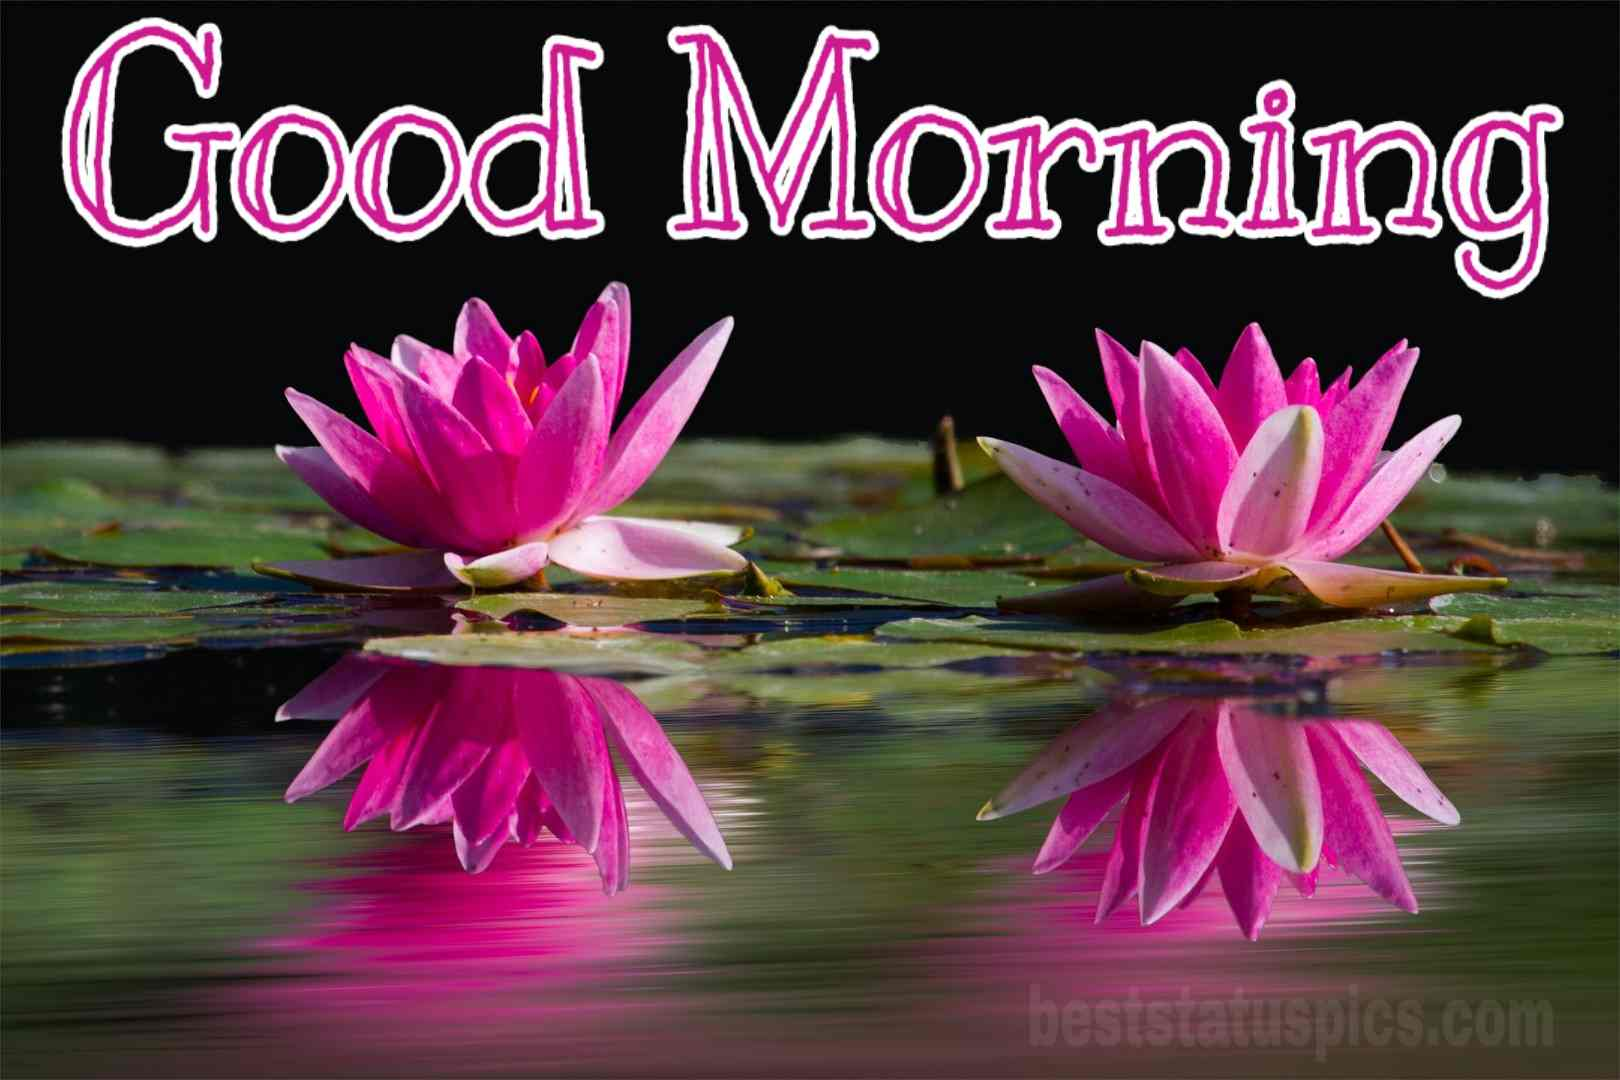 New Good Morning Lotus Flower Hd New Good Morning Images Hd 3224502 Hd Wallpaper Backgrounds Download